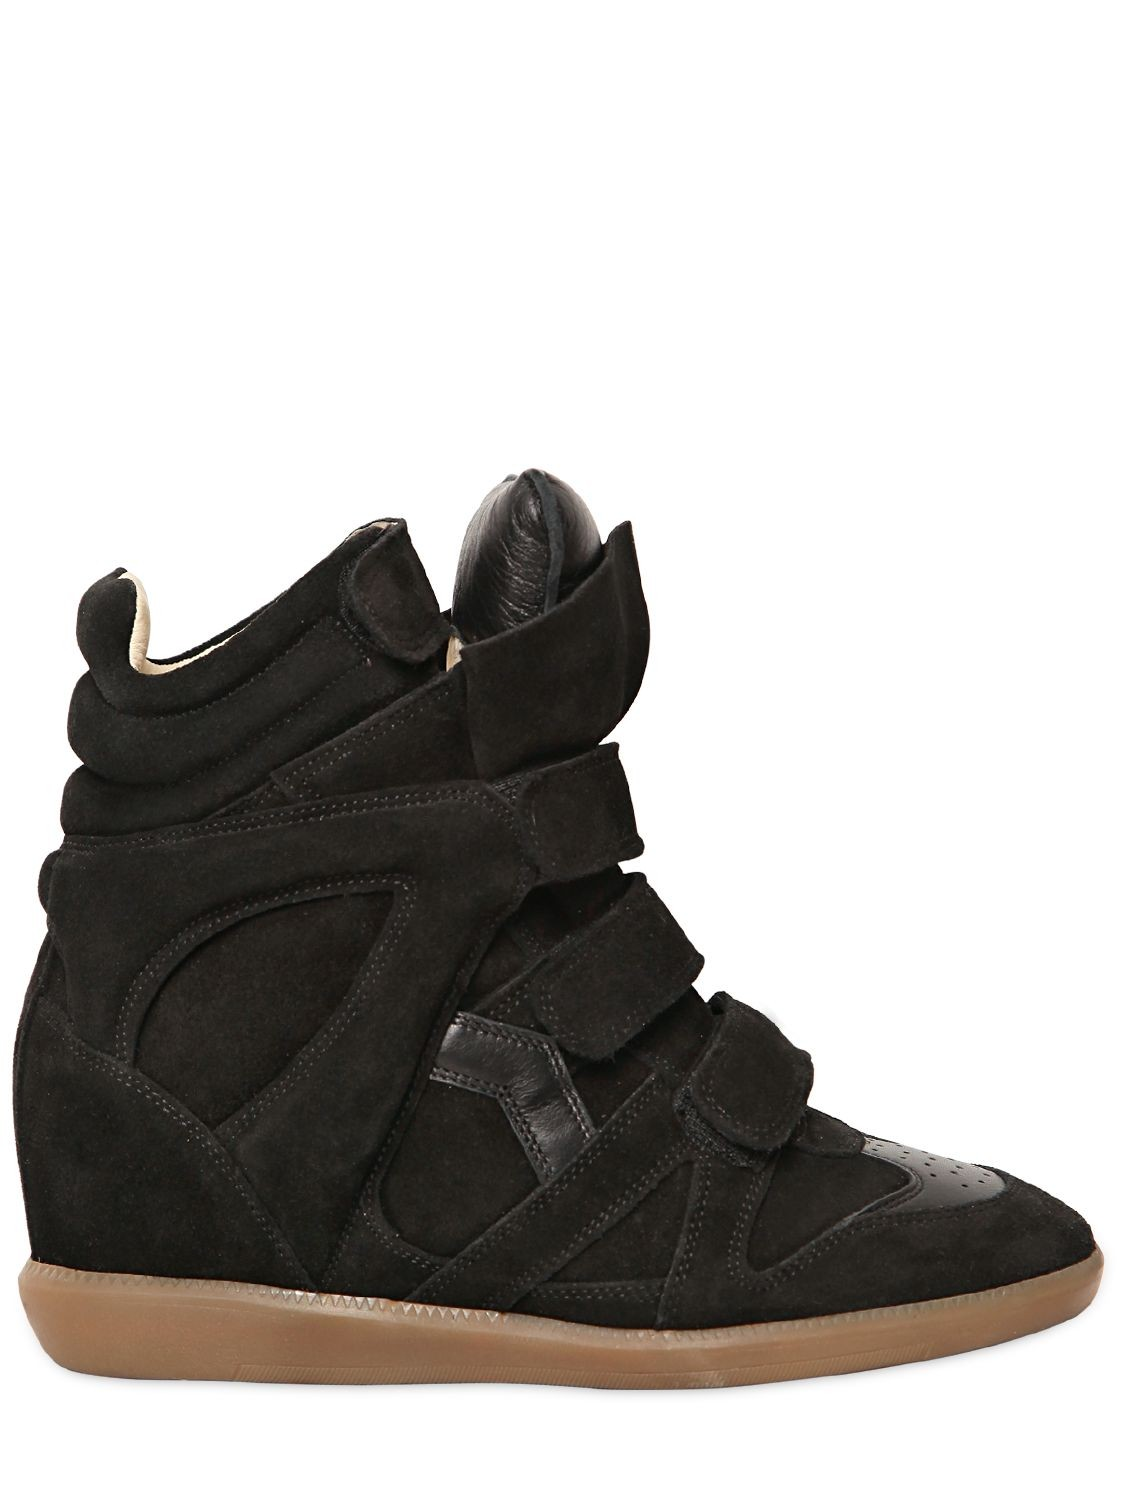 Isabel Marant Etoile 80mm Bekett Suede Black Women's Wedge Sneakers